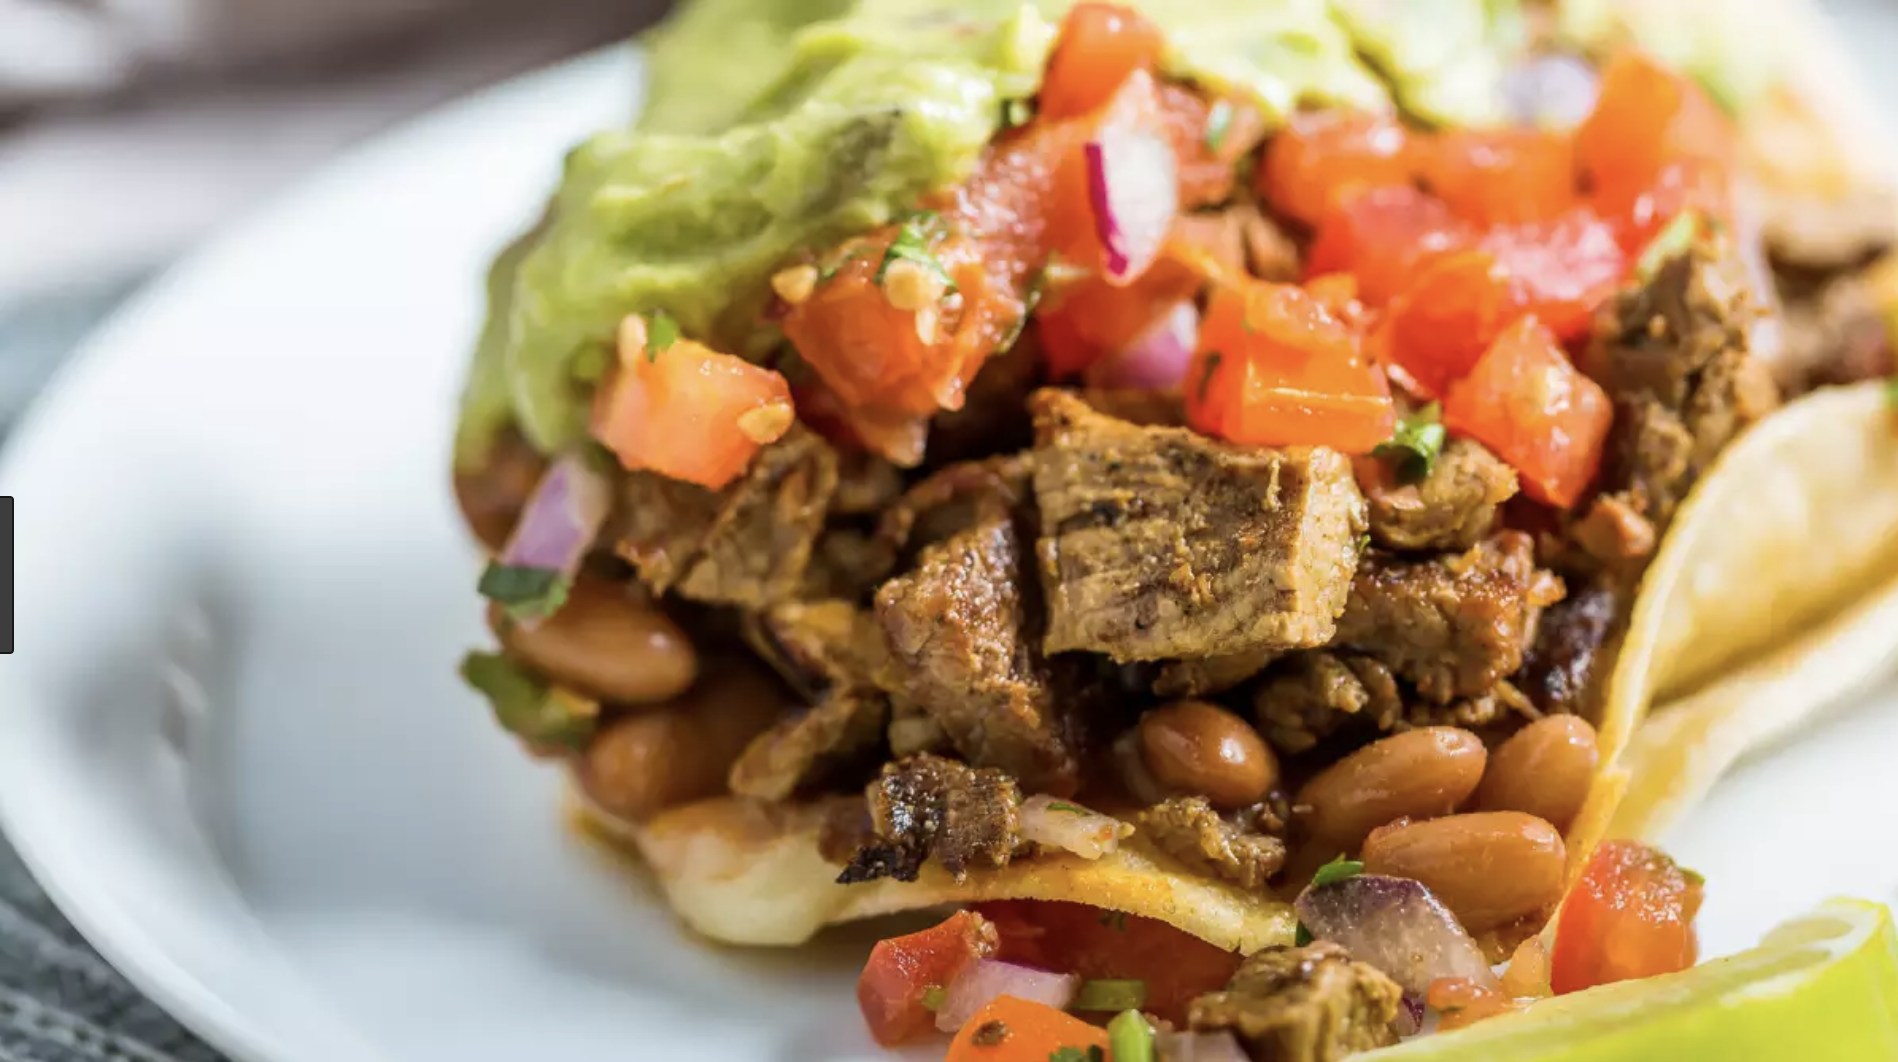 Screen Shot 2019-05-24 at 11.22.17 AM.png